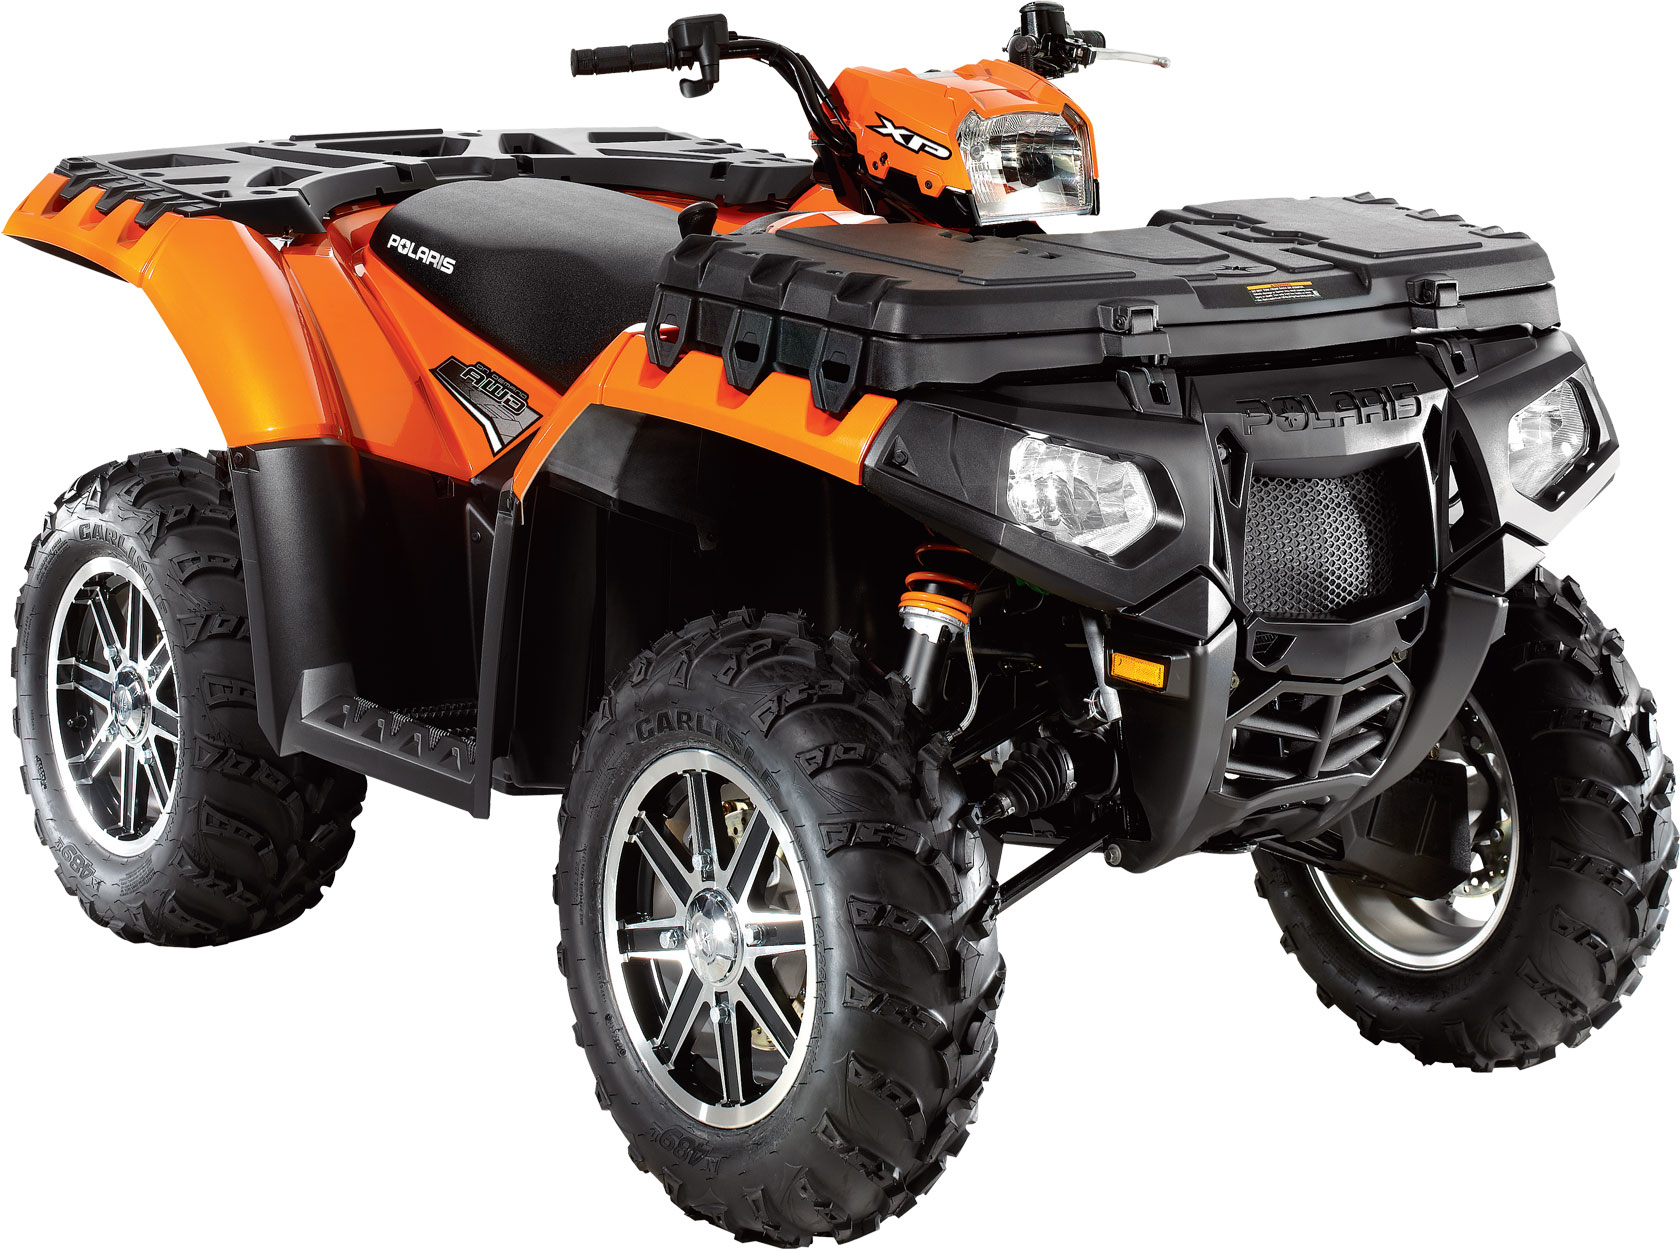 2011 polaris sportsman xp 850 eps orange madness le. Black Bedroom Furniture Sets. Home Design Ideas